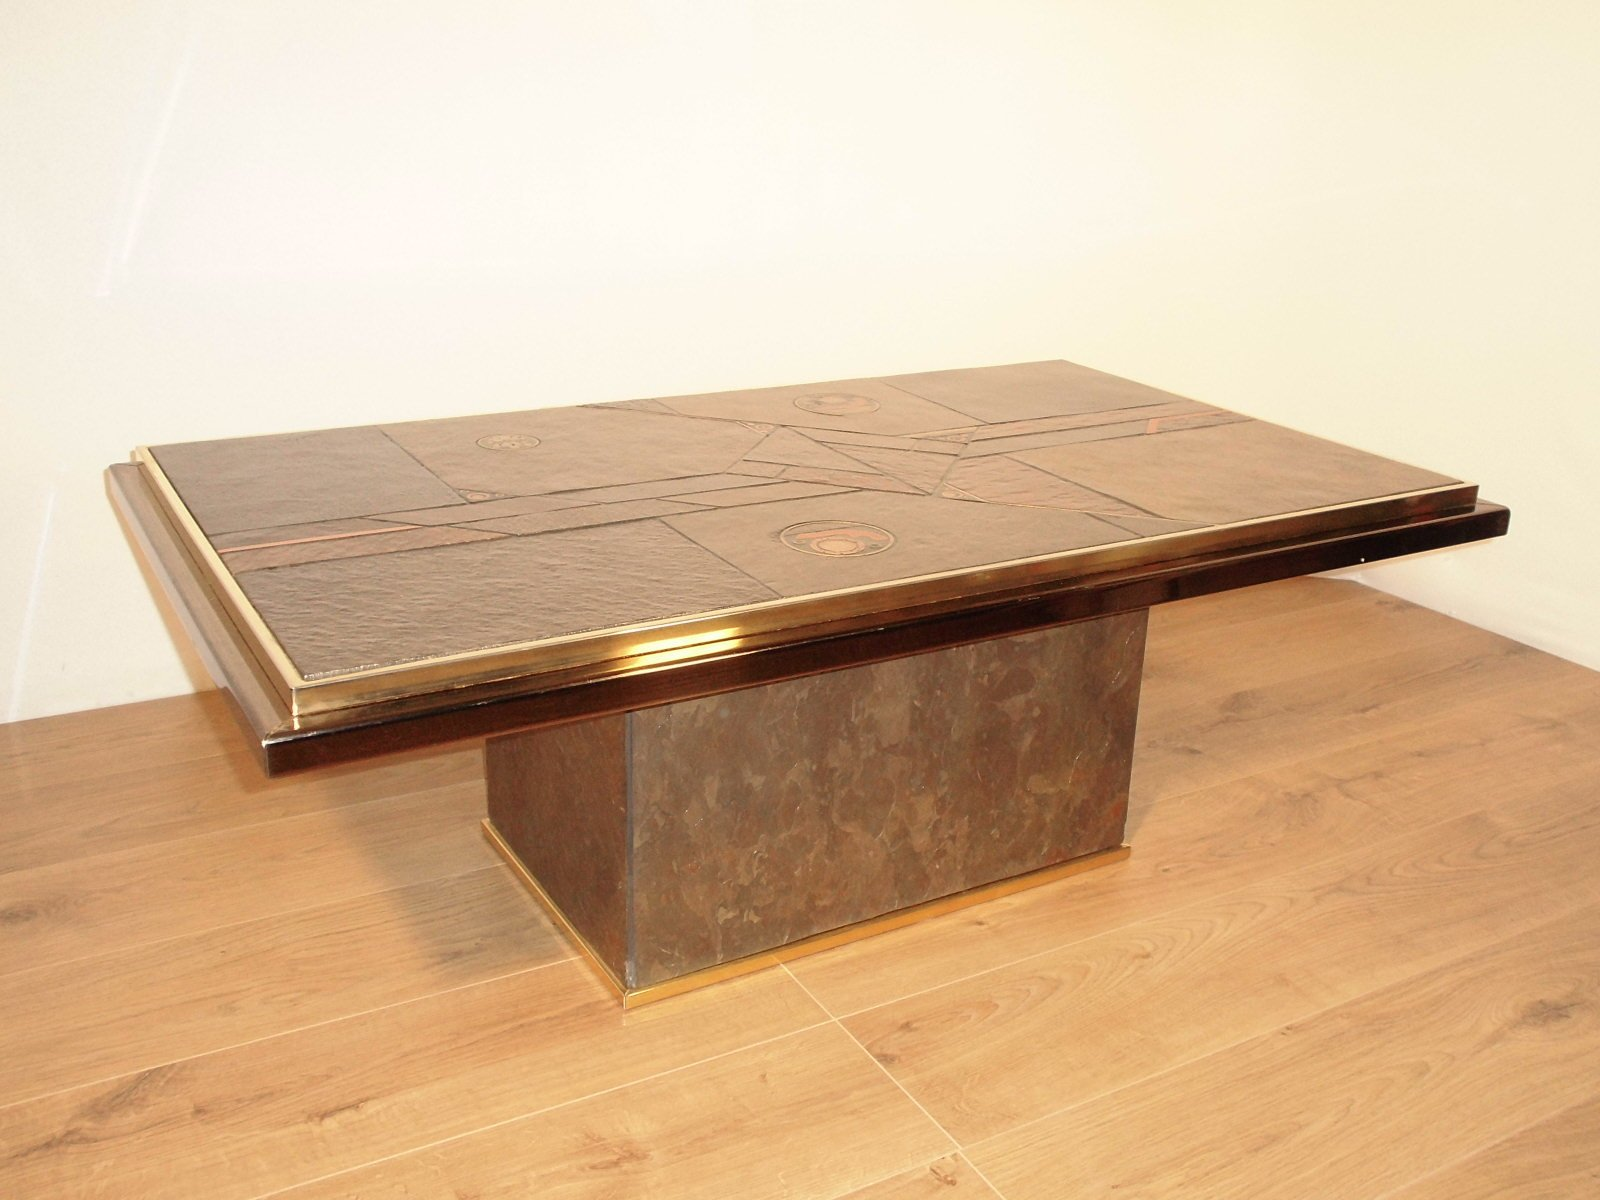 table basse en pierre et en bronze par paul kingma 1970 en vente sur pamono. Black Bedroom Furniture Sets. Home Design Ideas